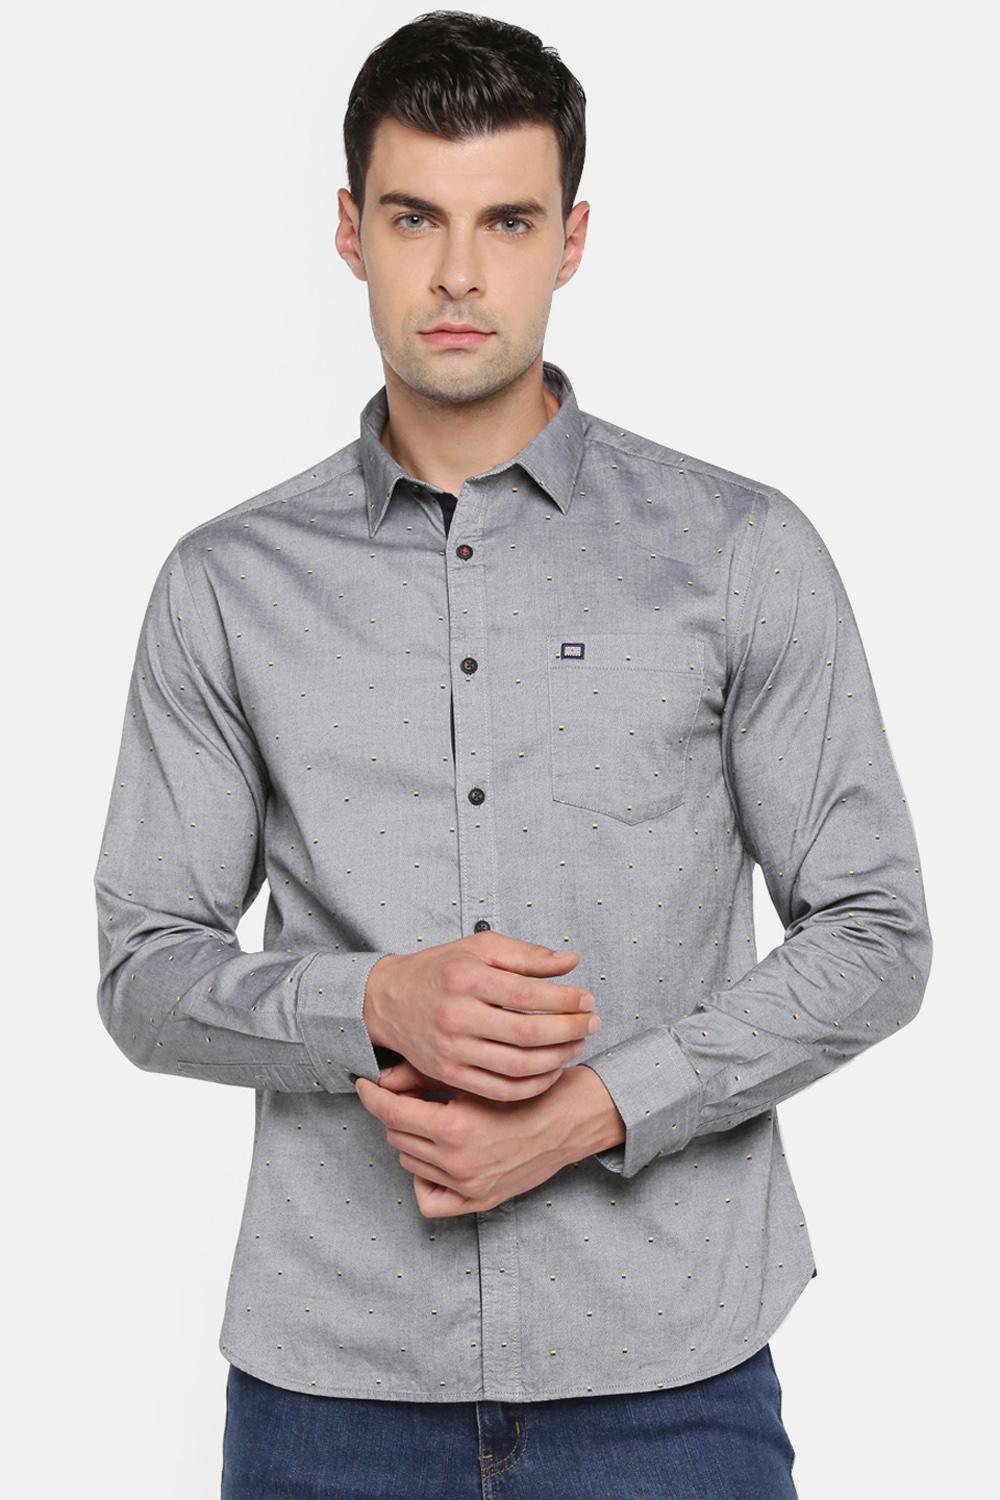 09ee3146976 What Color Shirt Do You Wear With Gray Jeans | Top Mode Depot